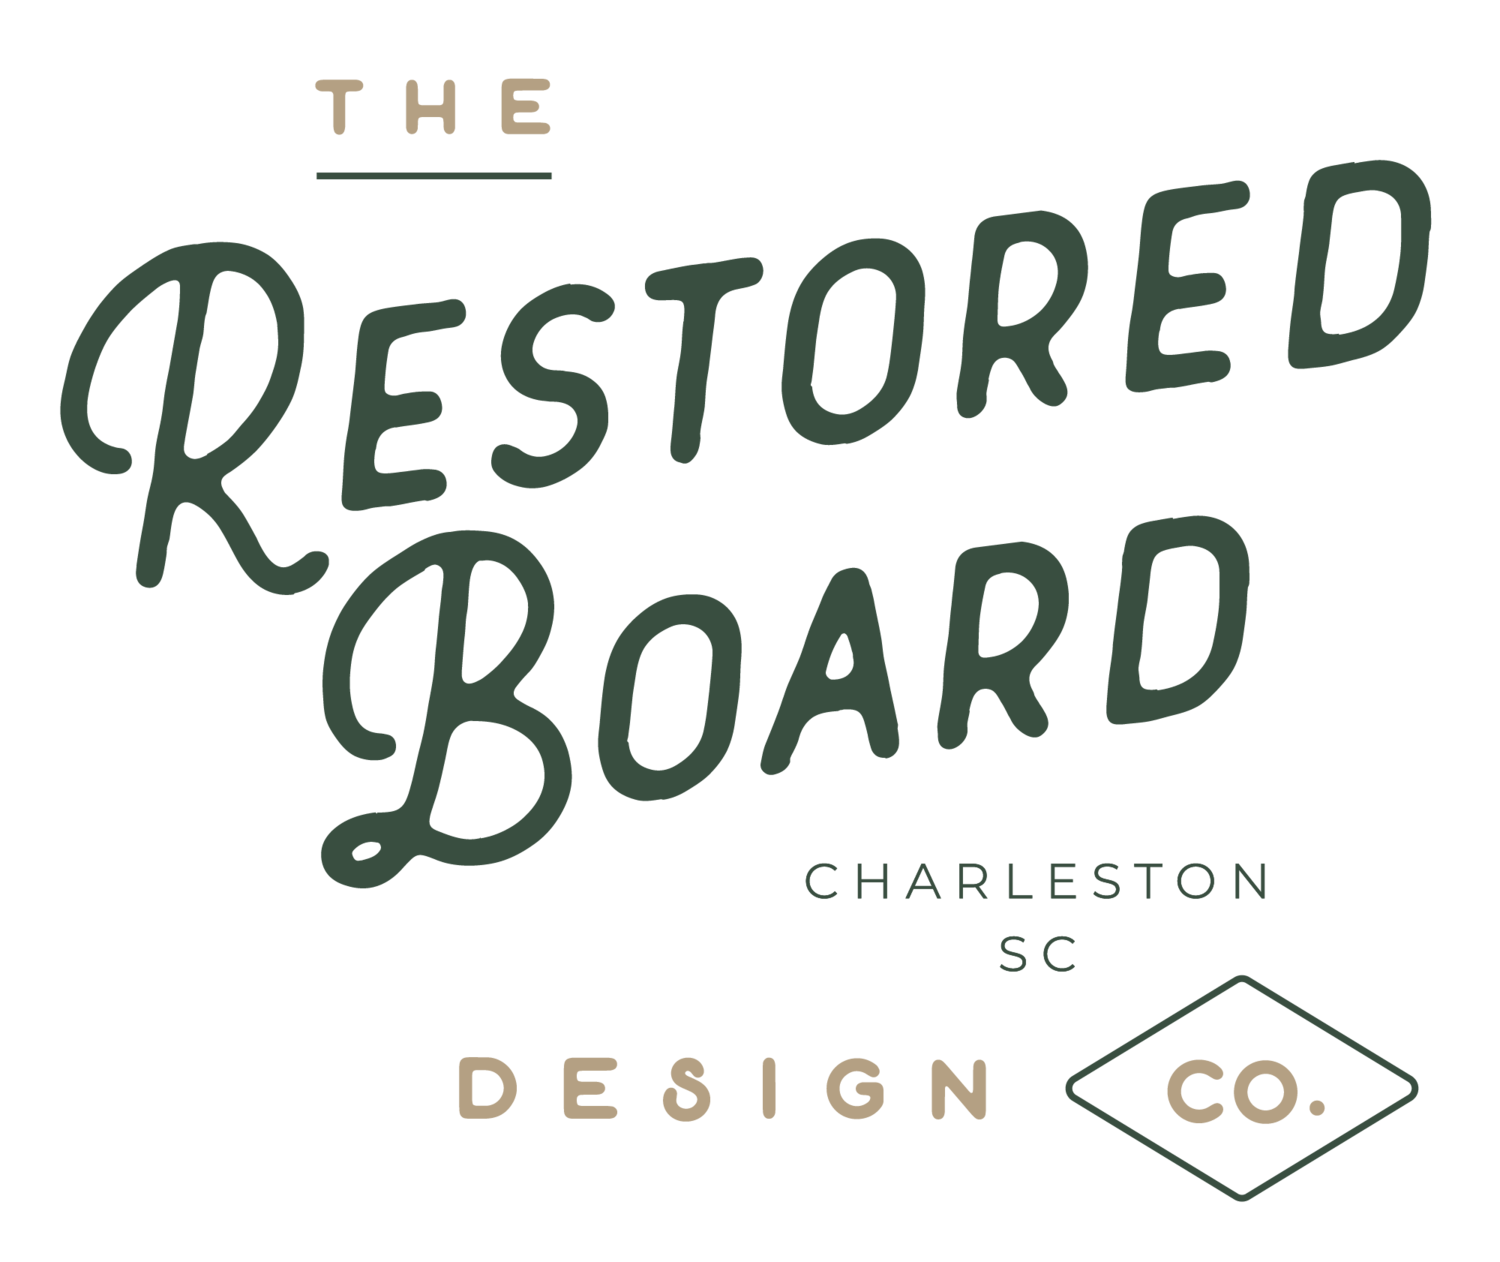 The Restored Board Design Co.